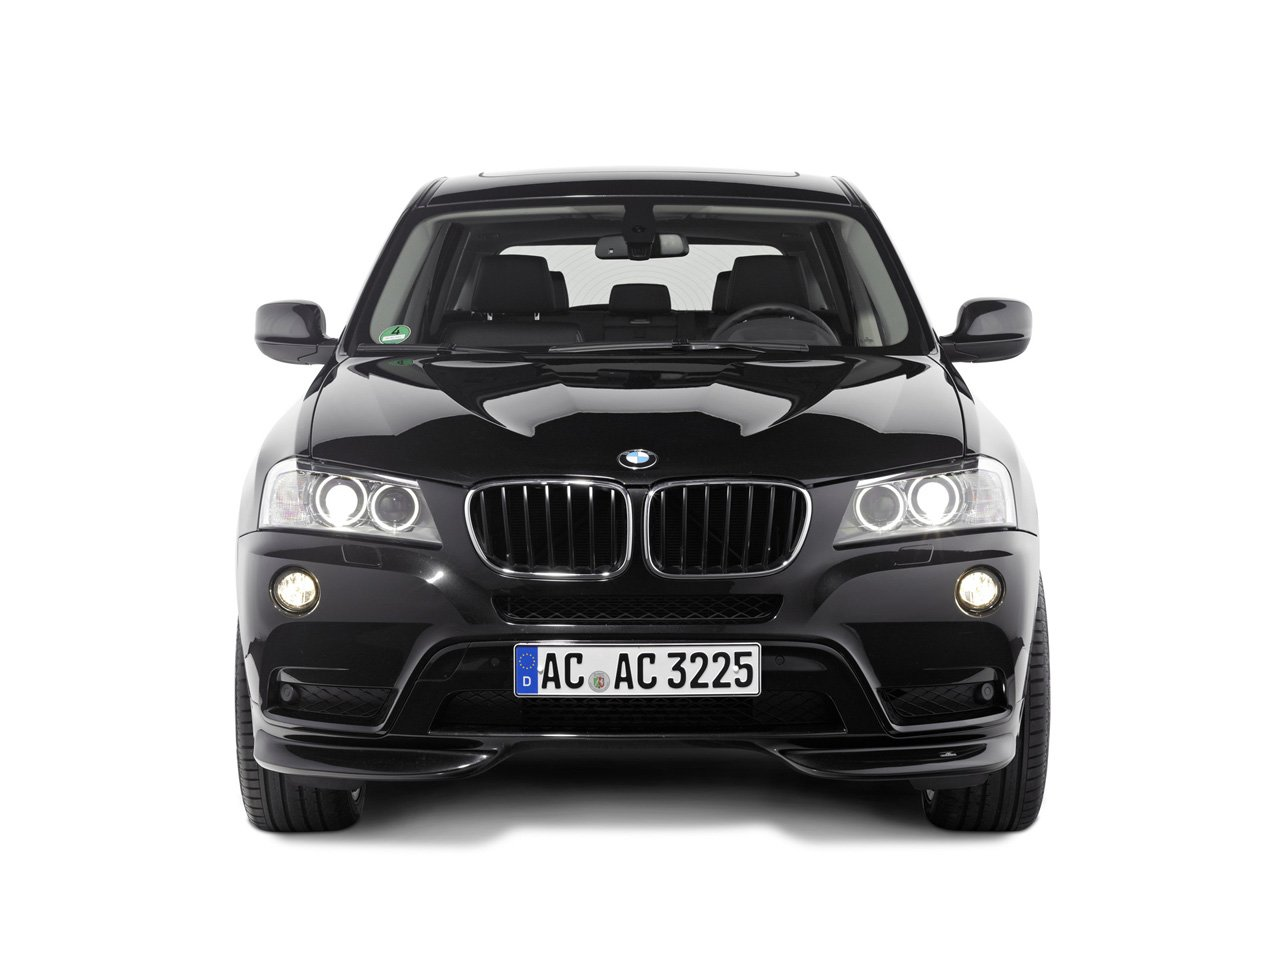 Latest 2011 Ac Schnitzer Bmw X3 Wallpapers Auto Cars Concept Free Download